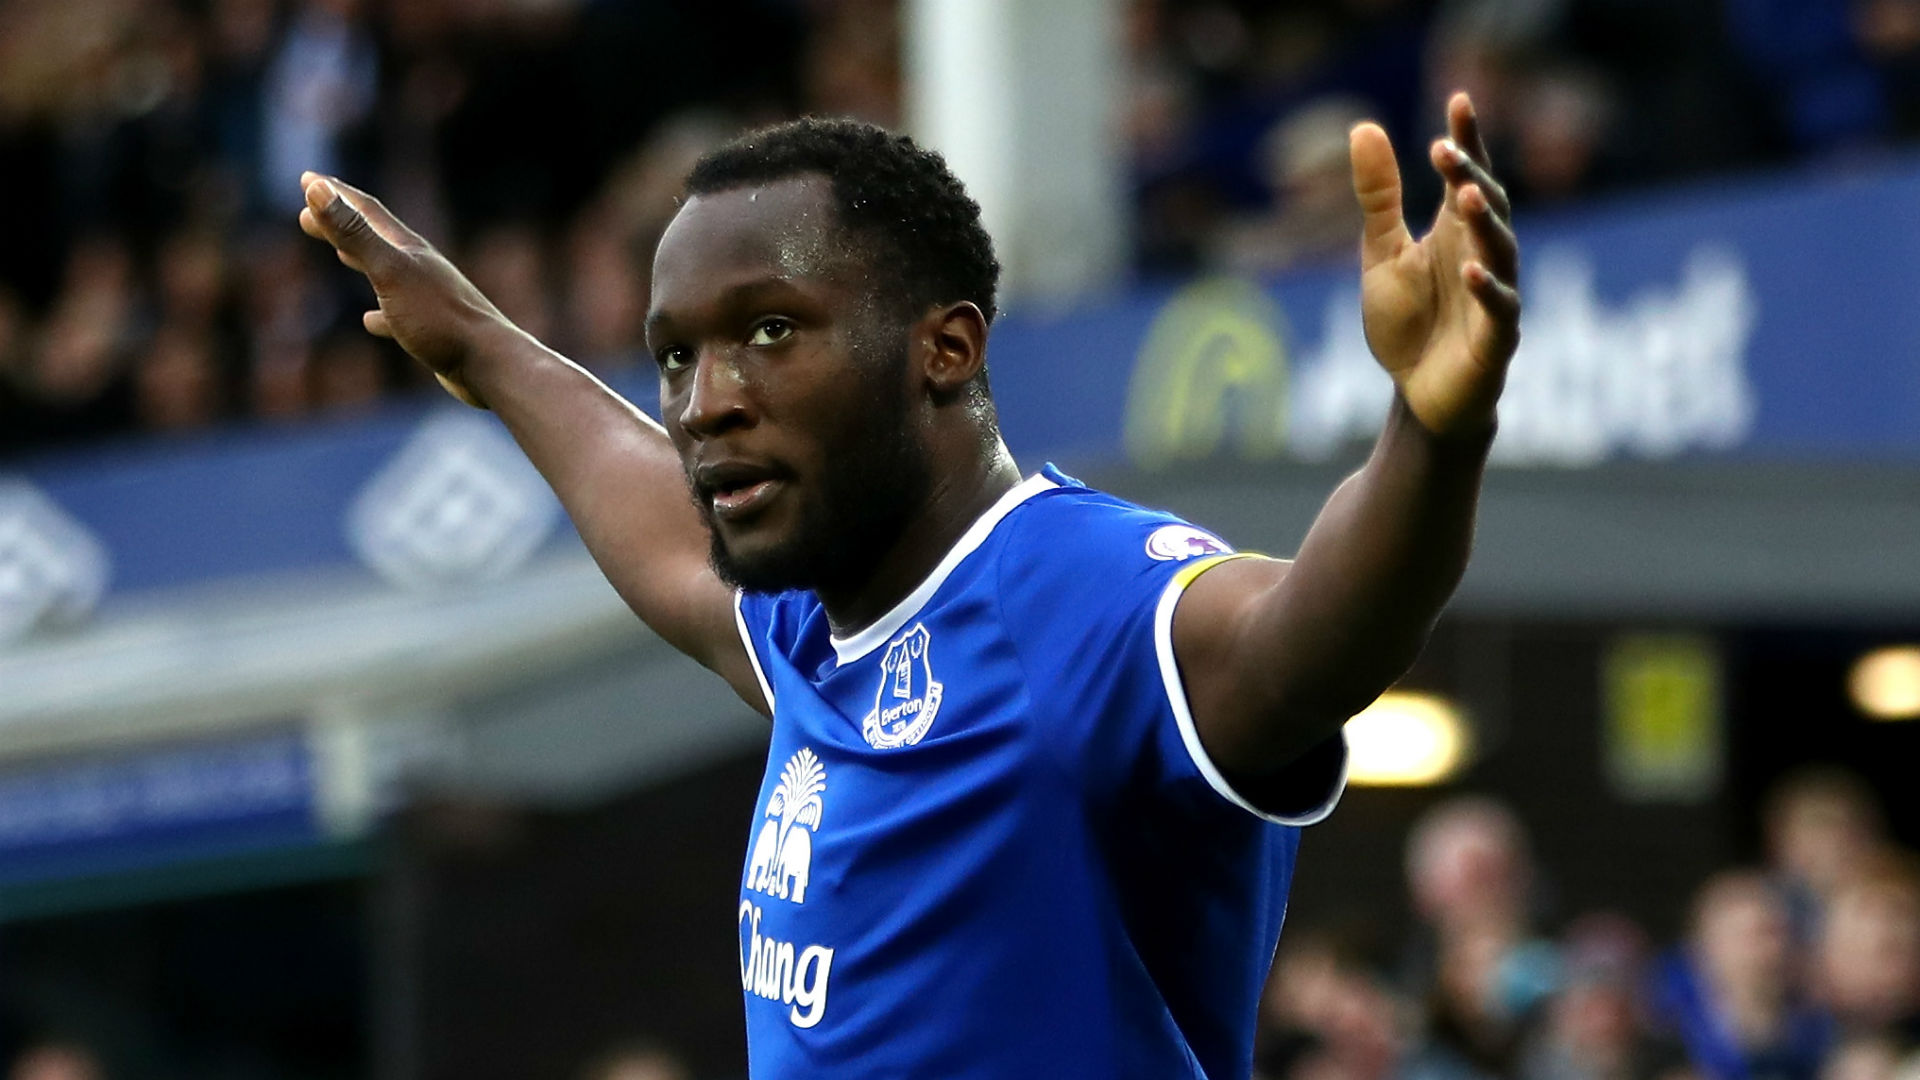 romelu lukaku cropped vjqqwtksxspj17p1gc0fw5eht - Don't Go Back to Chelsea - Wilkins Warns Lukaku